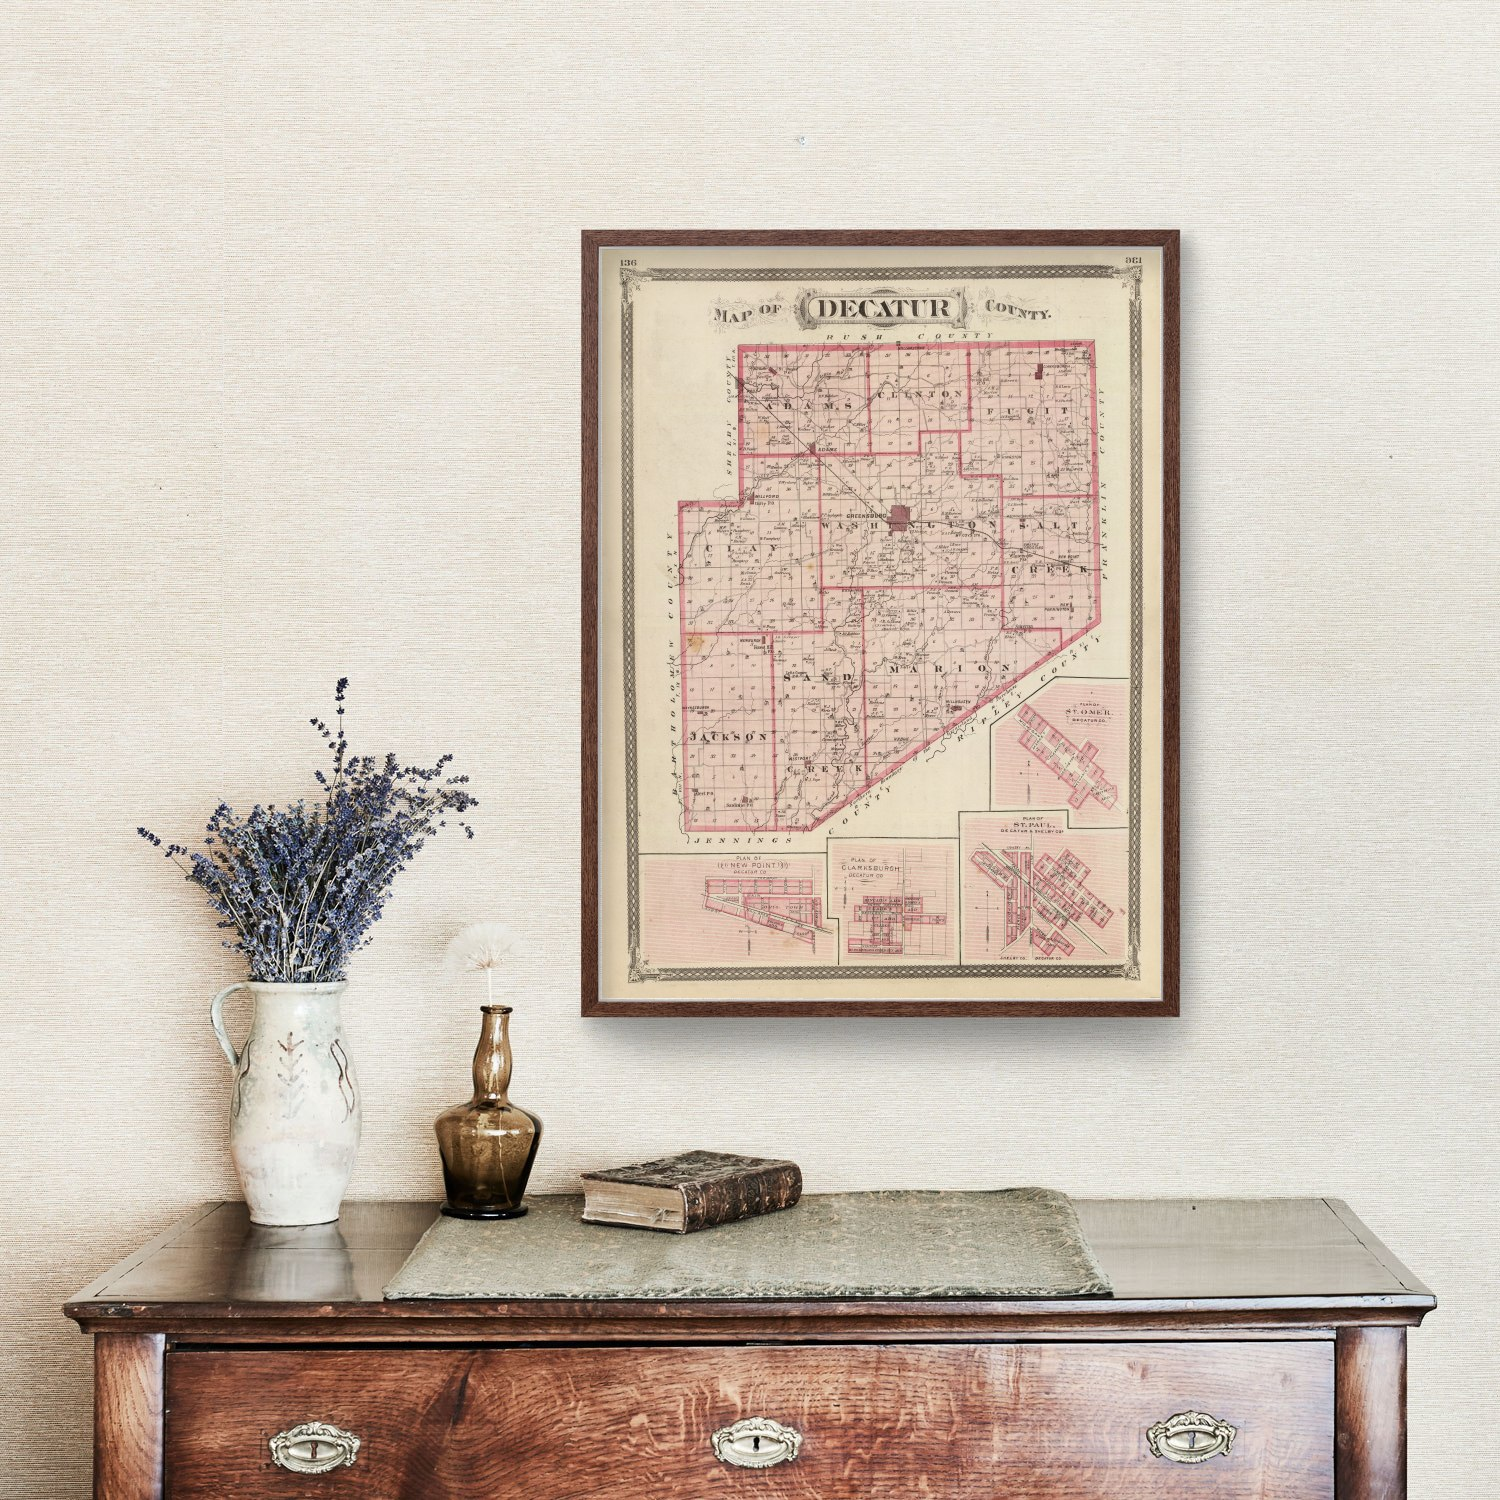 Vintage Map of Decatur County Indiana, 1876